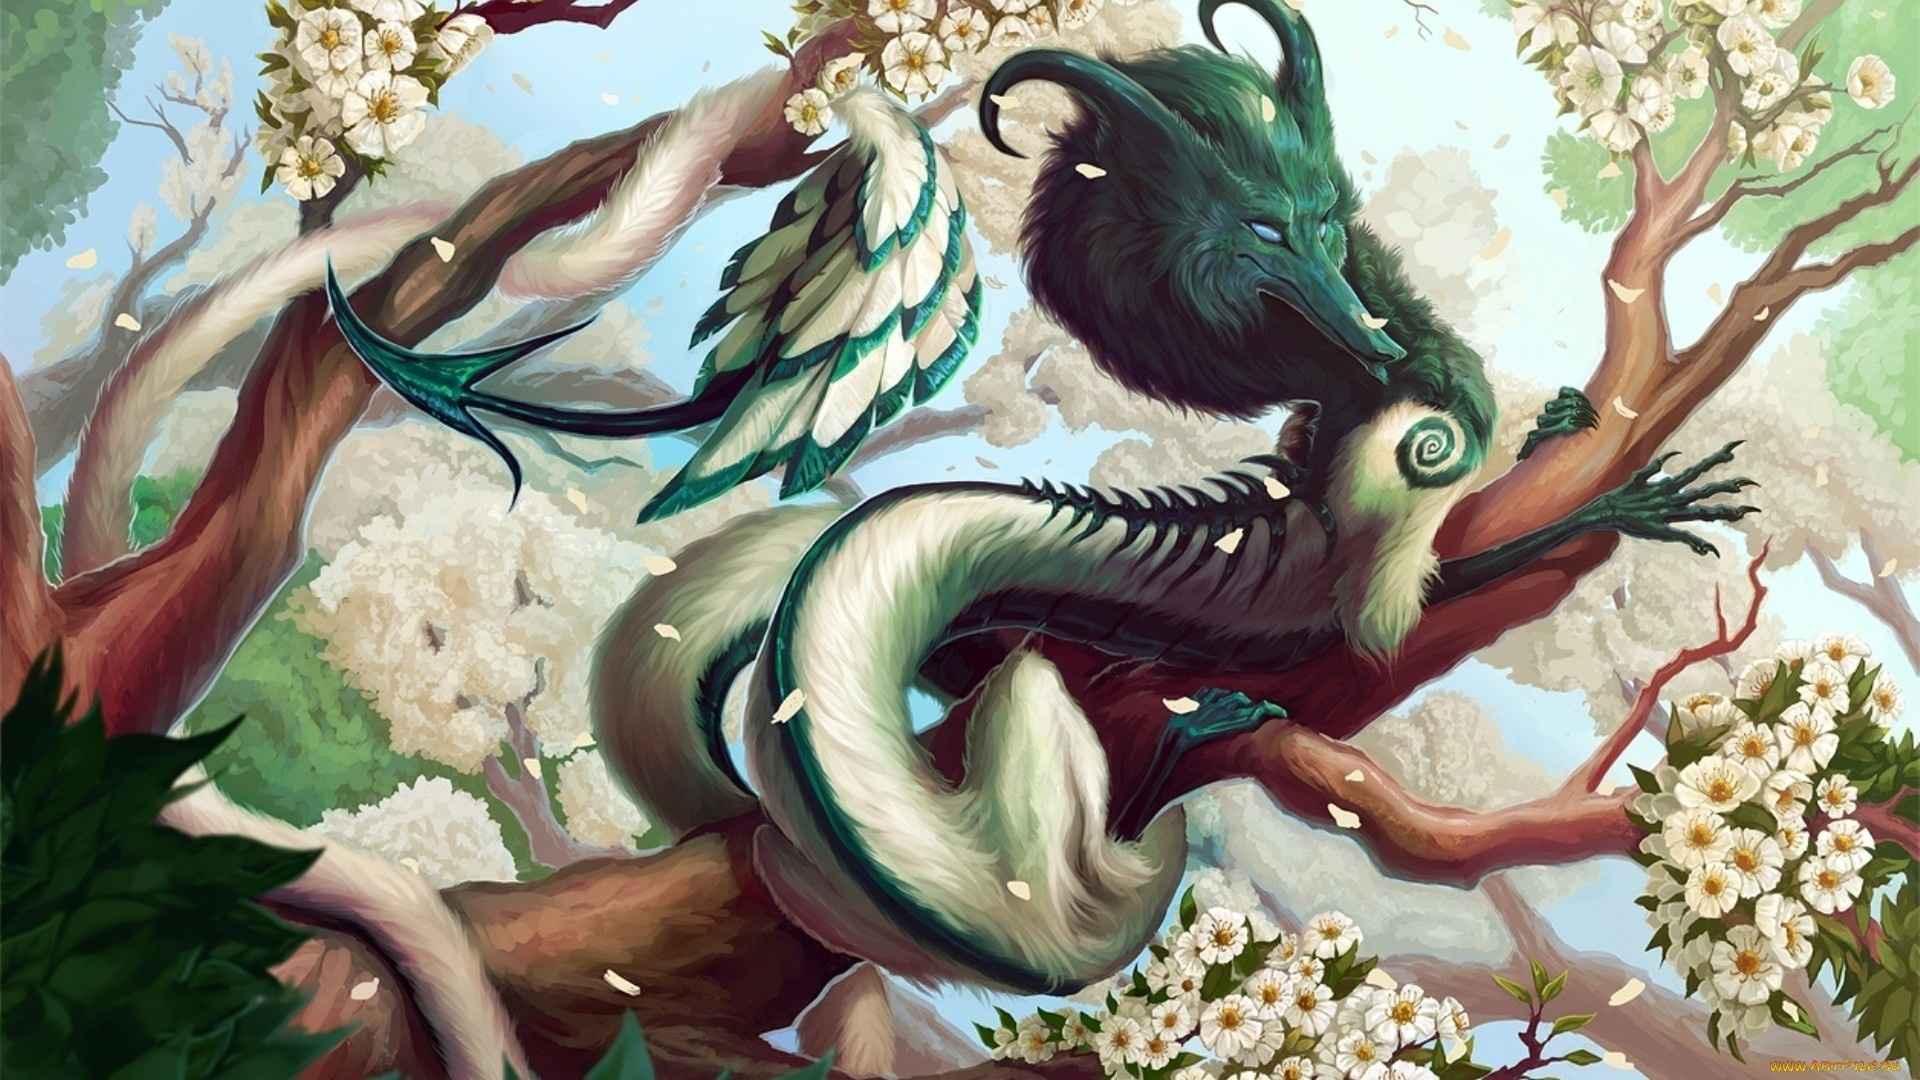 Mythical Creatures desktop wallpaper hd